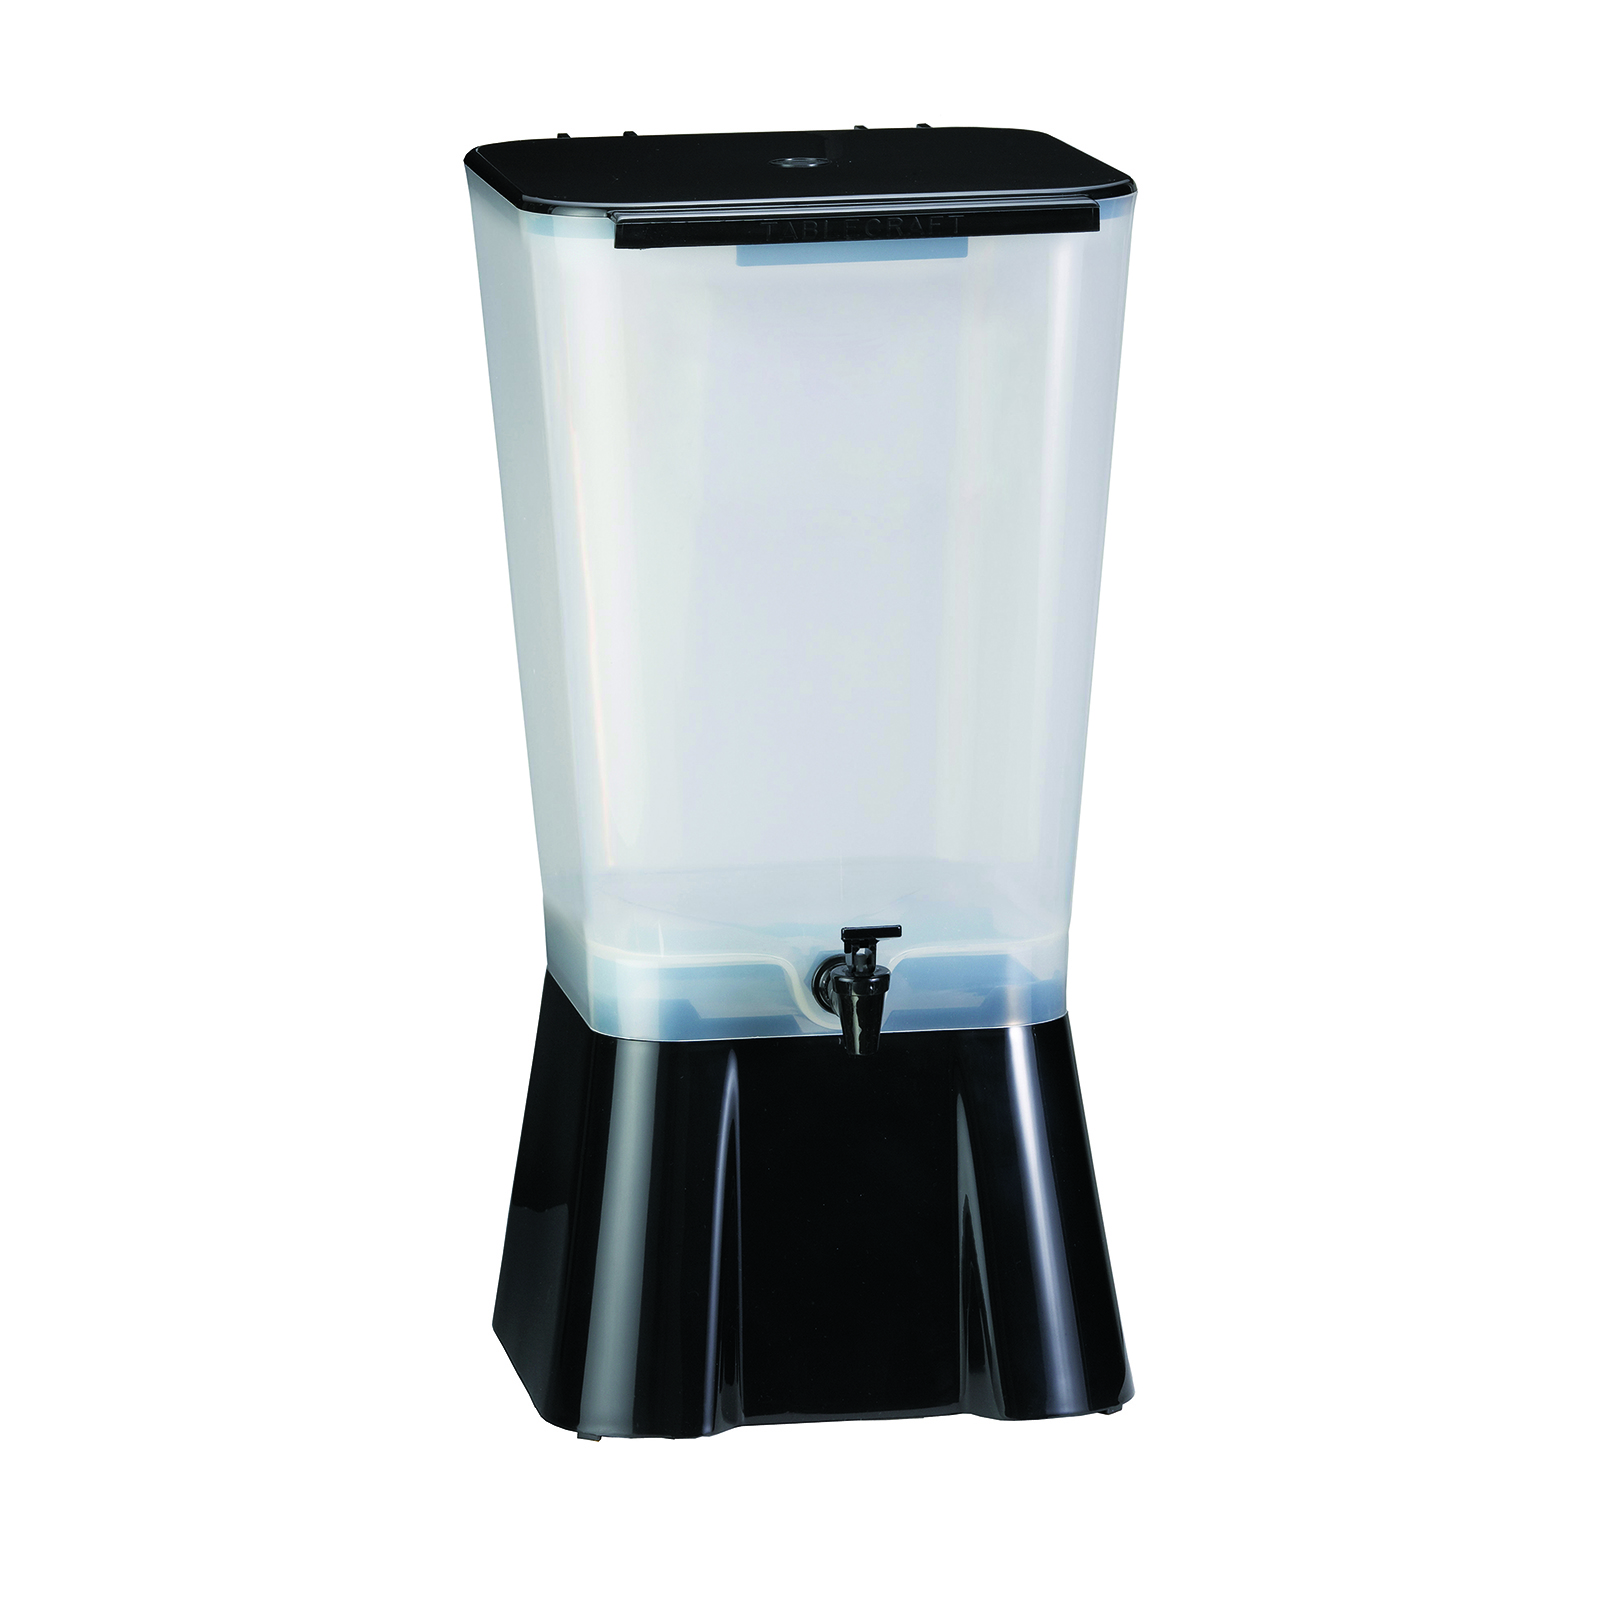 TableCraft Products 1053 beverage dispenser, non-insulated